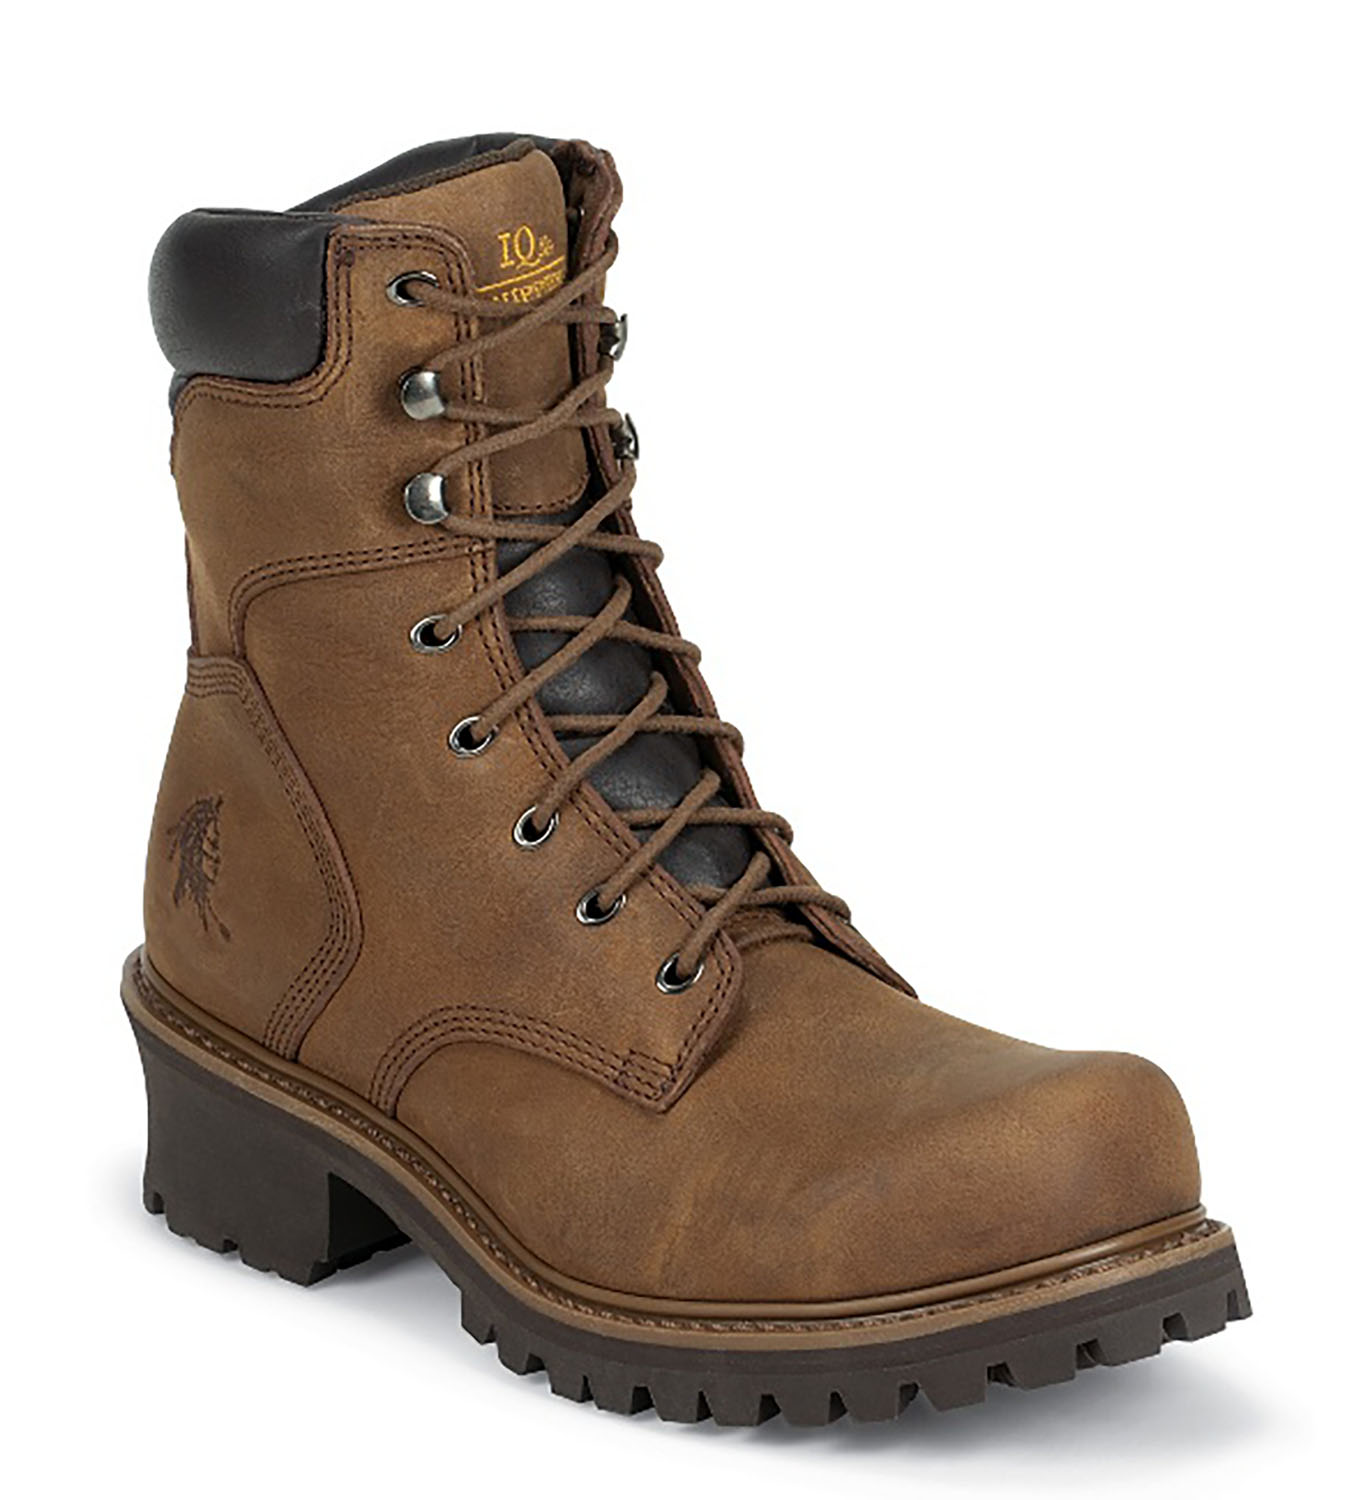 Chippewa 55025 8 IQ Oblique Steel Toe EH Insulated Logger